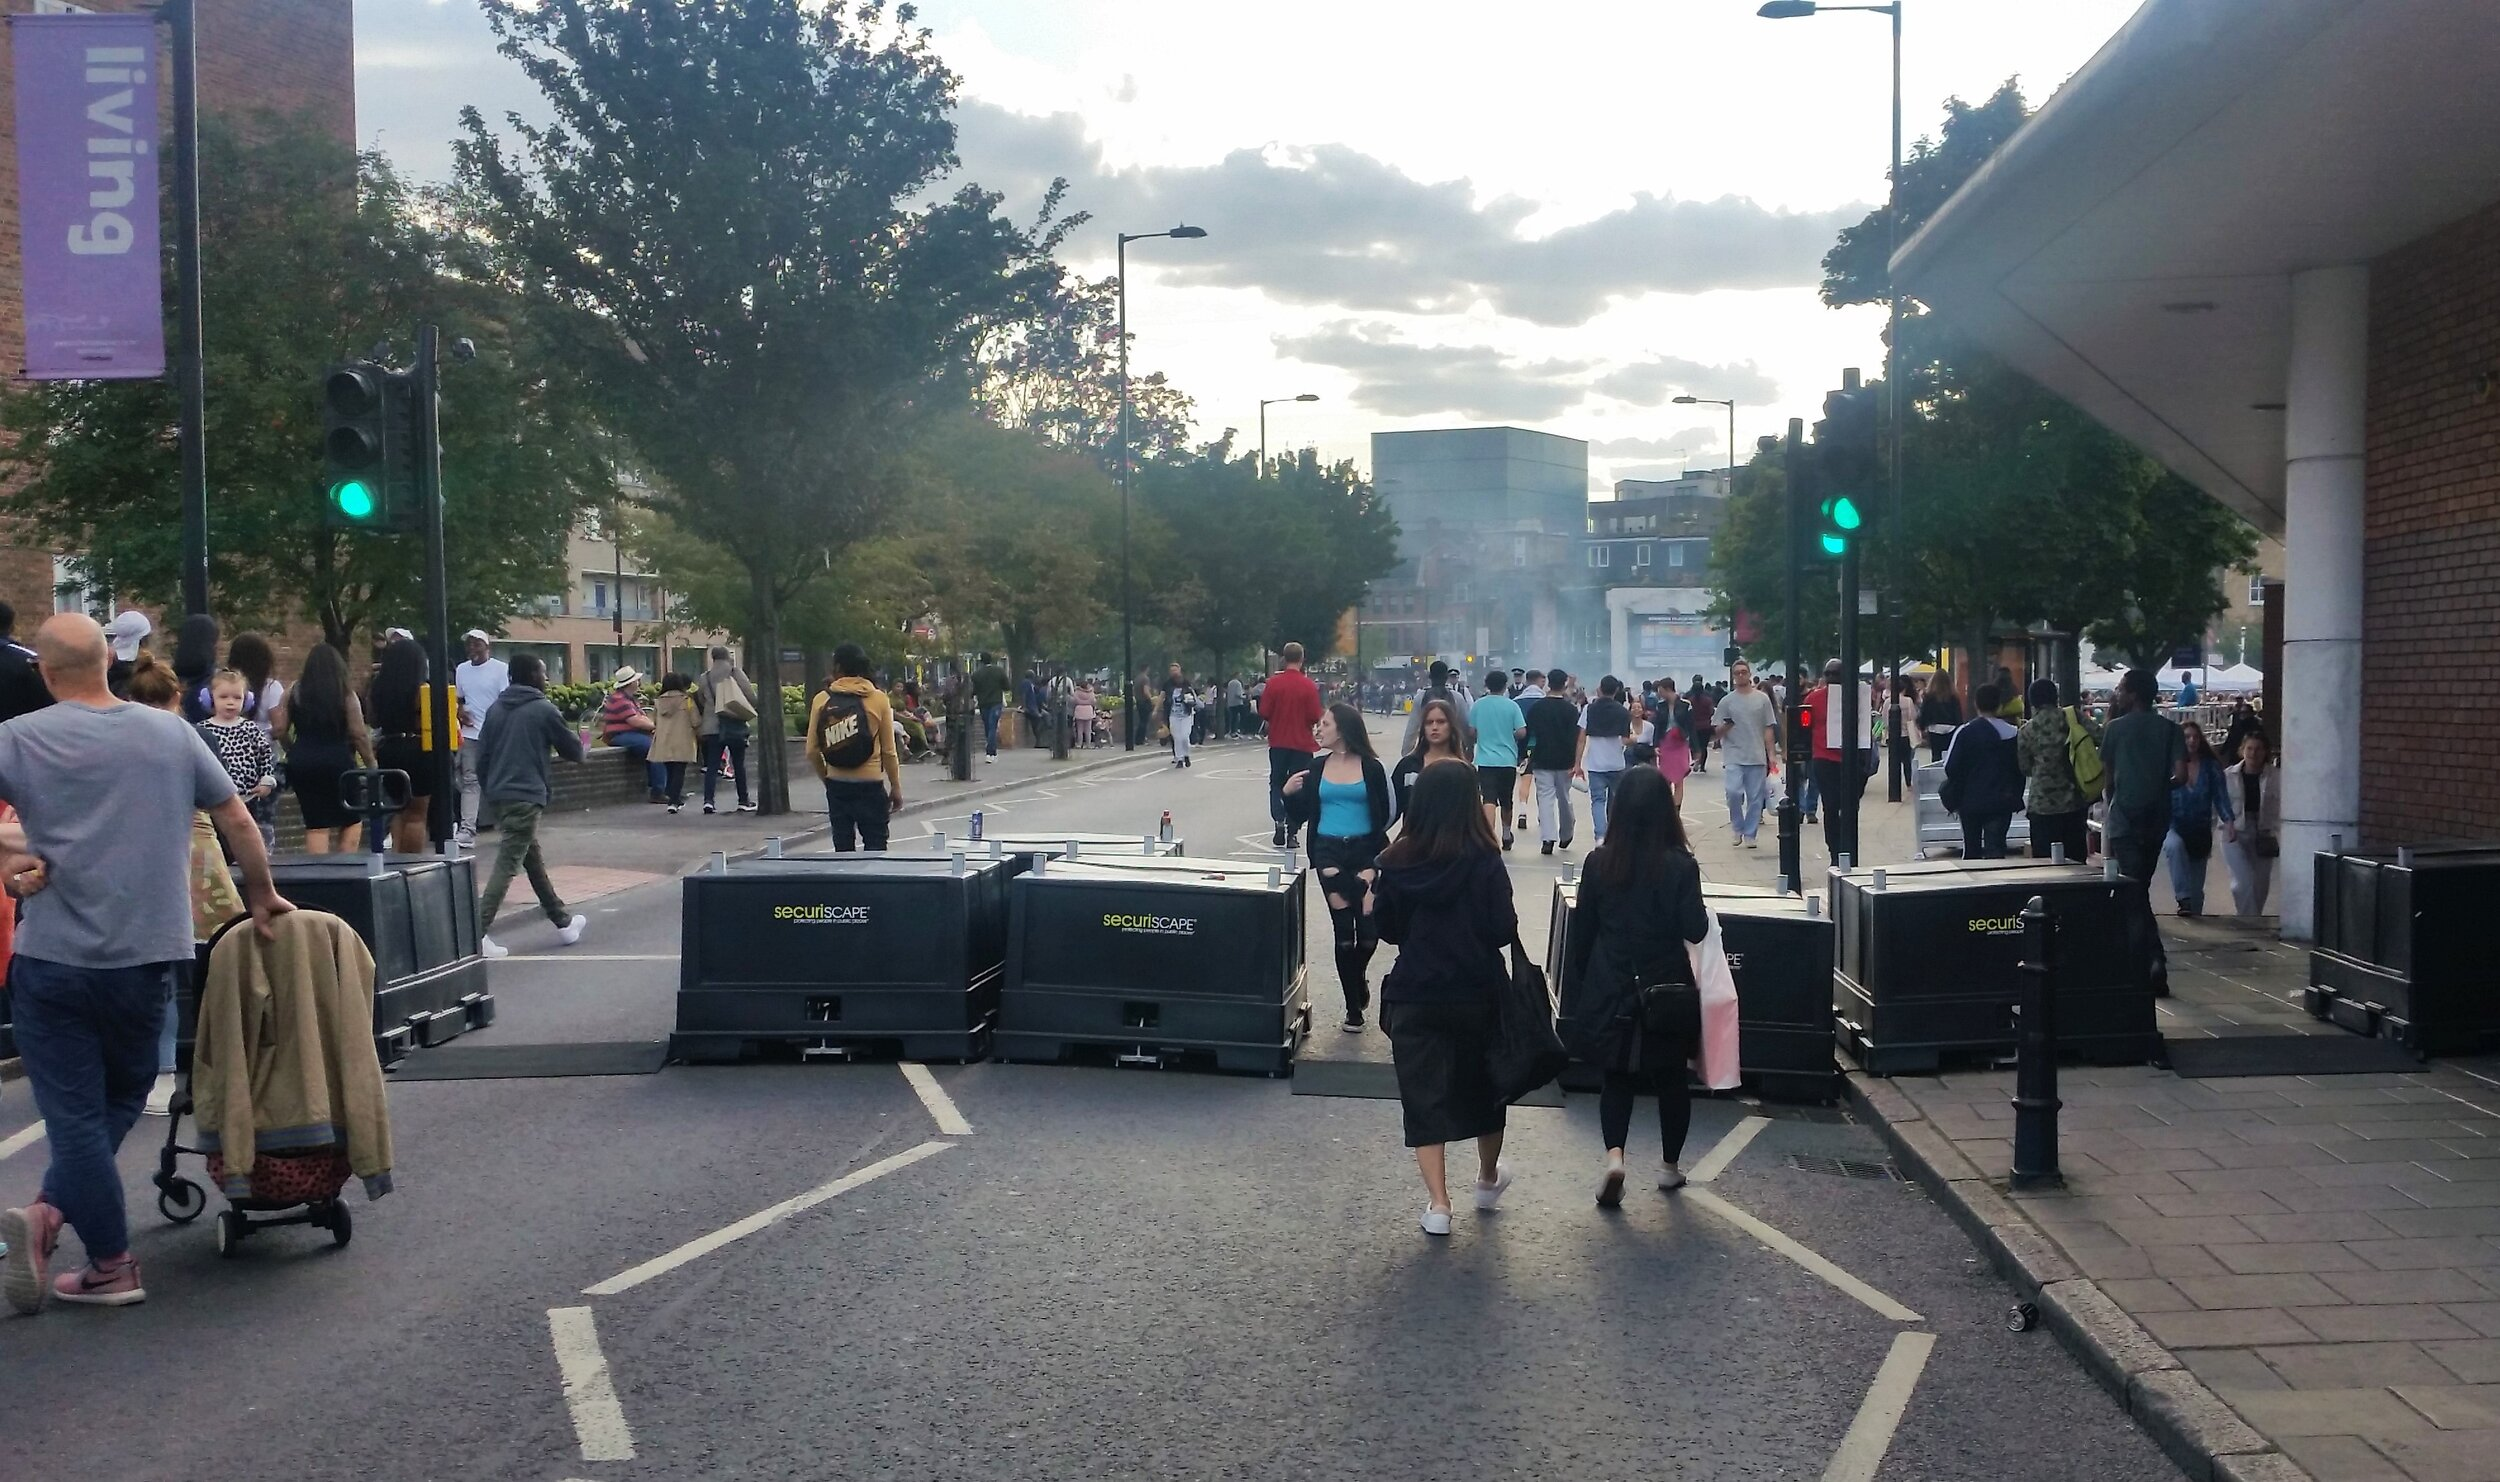 The organisers of Hackney Carnival took delivery of 11 of our SecuriPod HVM barriers in order to close off a key road from traffic, allowing the 100,000 people who attended the event to walk to the centre of the celebrations in peace.